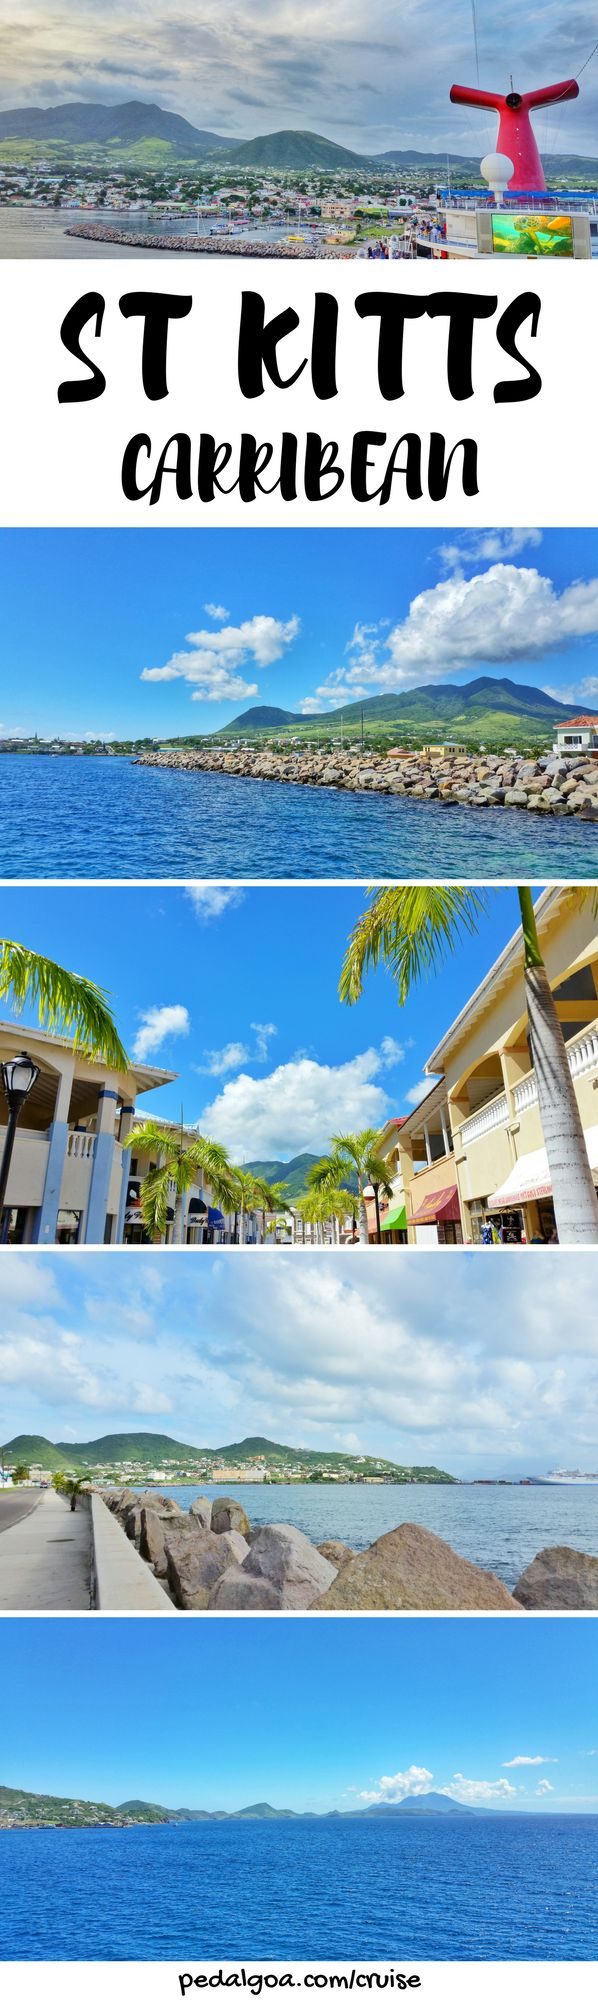 For your Caribbean cruise without excursions, things to do in St Kitts, including taking instagram pictures near St Kitts cruise port. You'll pass near Basseterre for shopping and food. Budget-friendly island activities after you get back from beaches, resorts, or tours! Cruise tips for your Caribbean cruise to St Kitts that might include Grand Turk, San Juan Puerto Rico, St Maarten, Barbados, St Lucia too. Caribbean vacation... #cruise #cruisetips